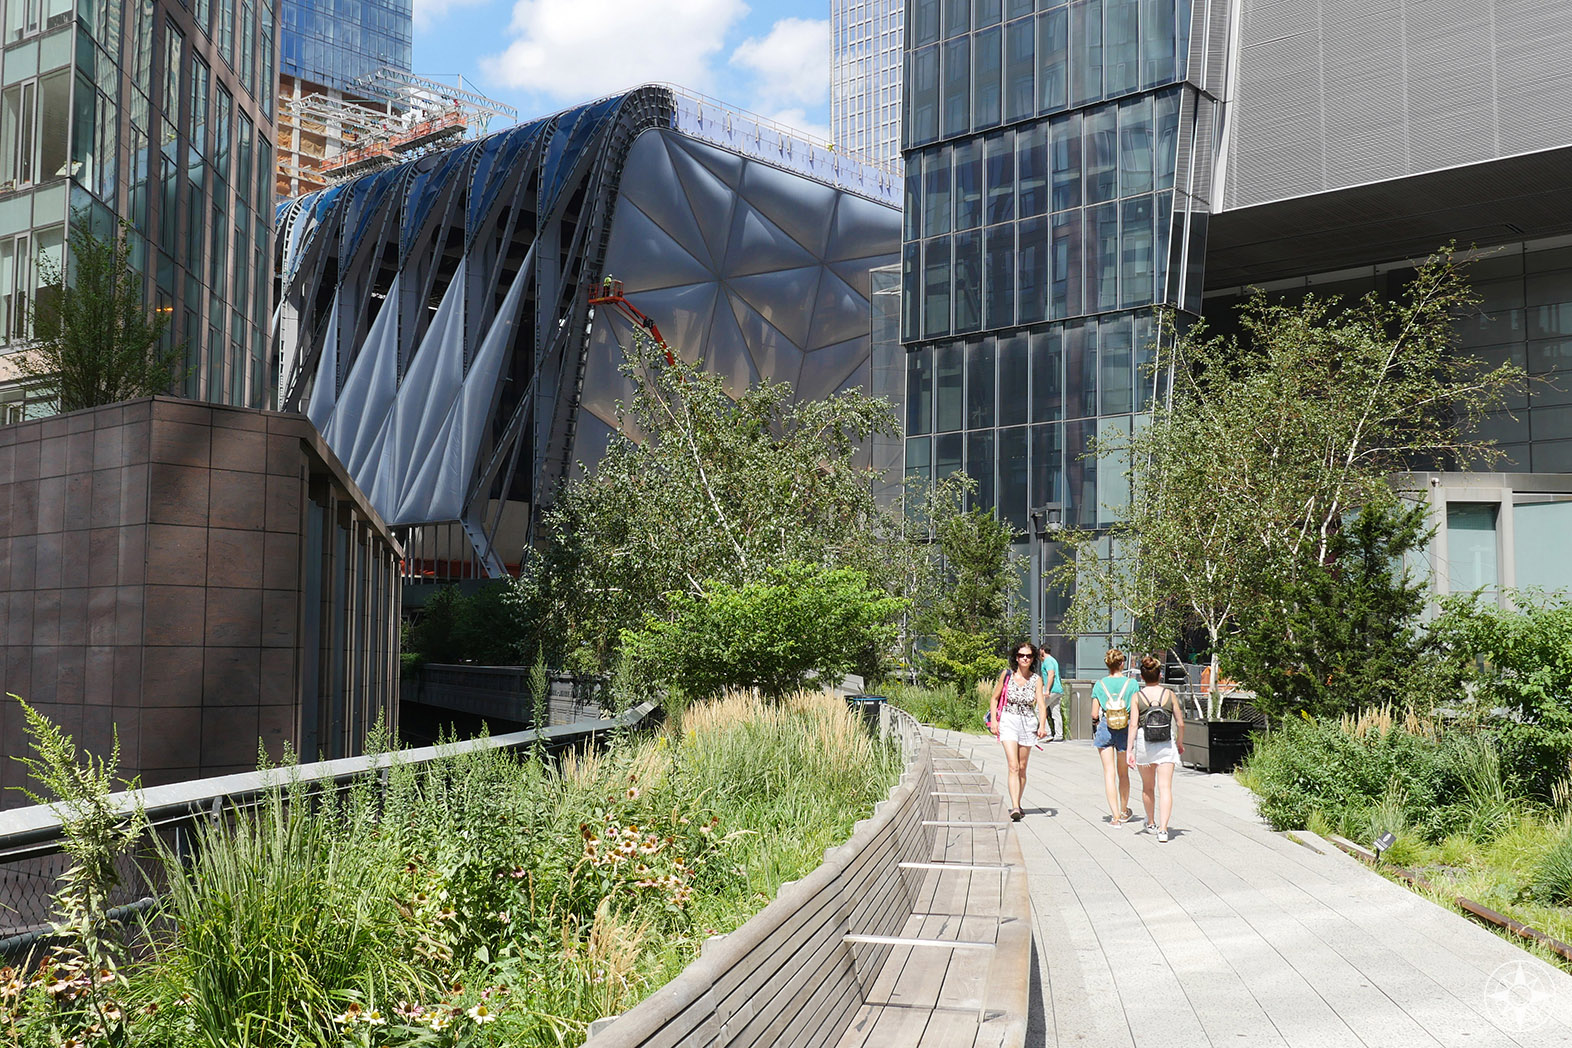 The High Line takes a turn to wind around the new Hudson Yards development and the old rail yard